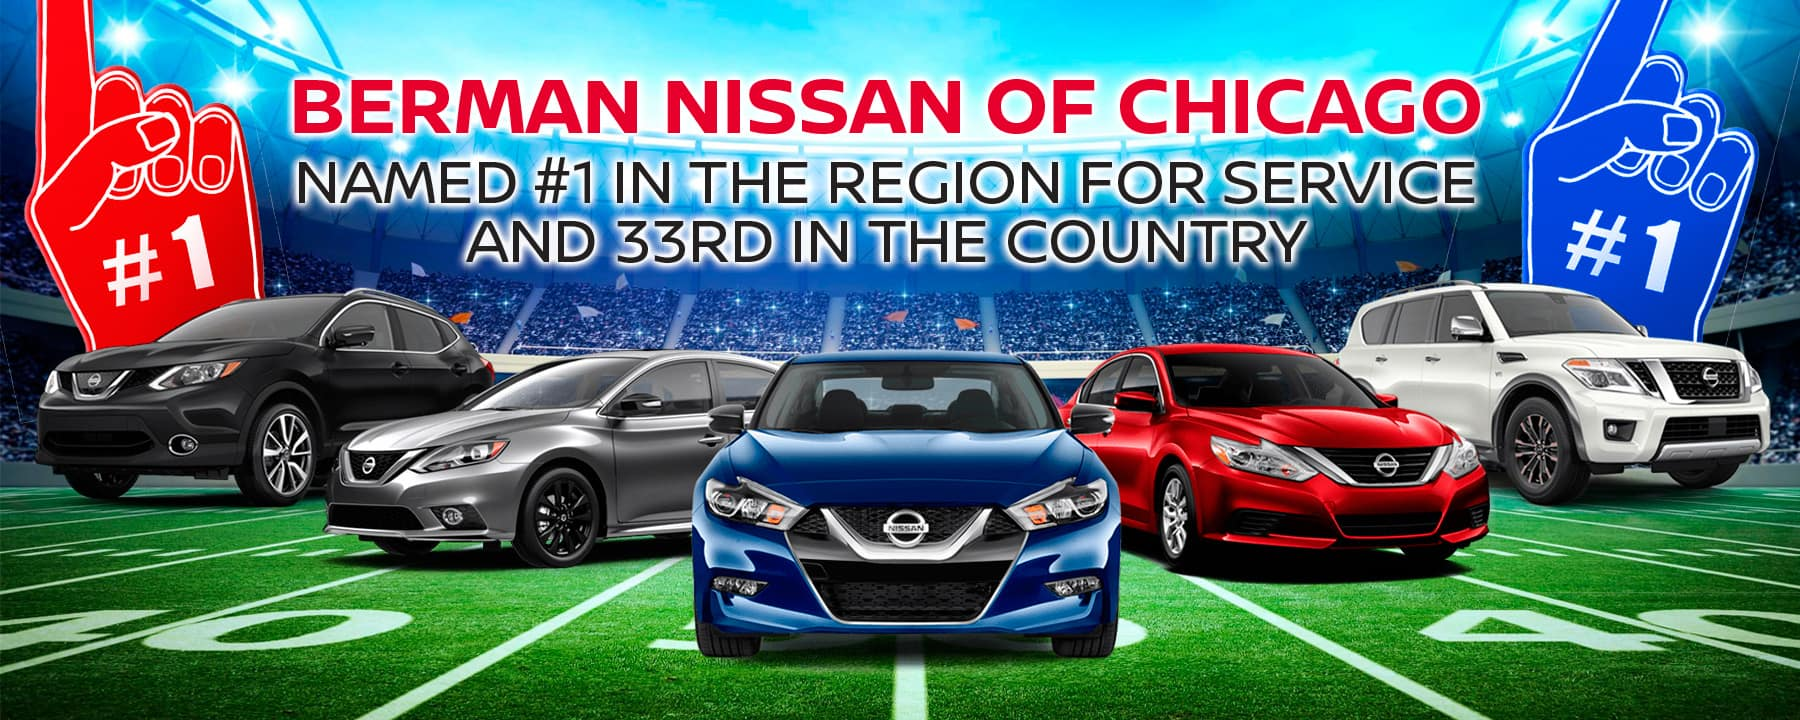 Berman Nissan of Chicago Named #1 in the Region for Service!